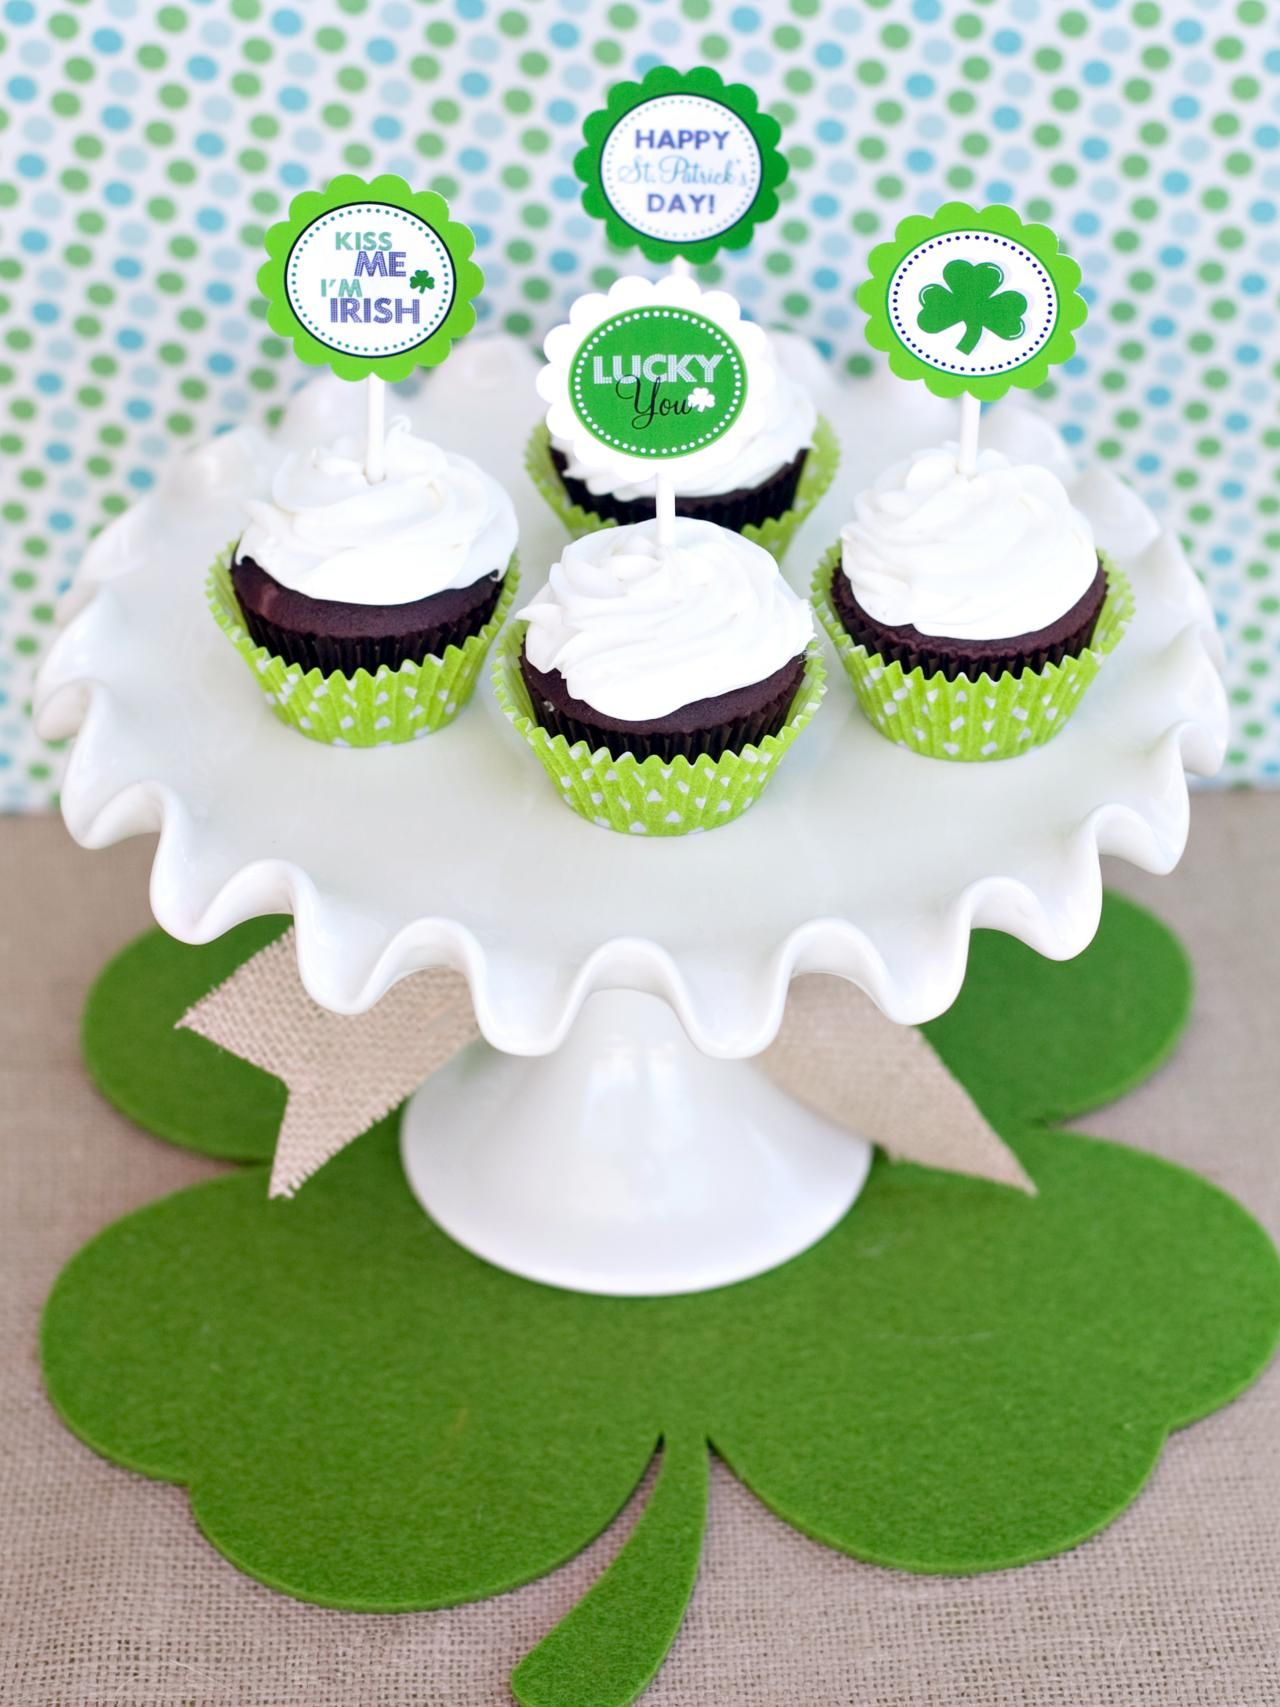 St. Patrick's Day Cupcake Toppers | Easy Crafts and Homemade Decorating & Gift Ideas | HGTV